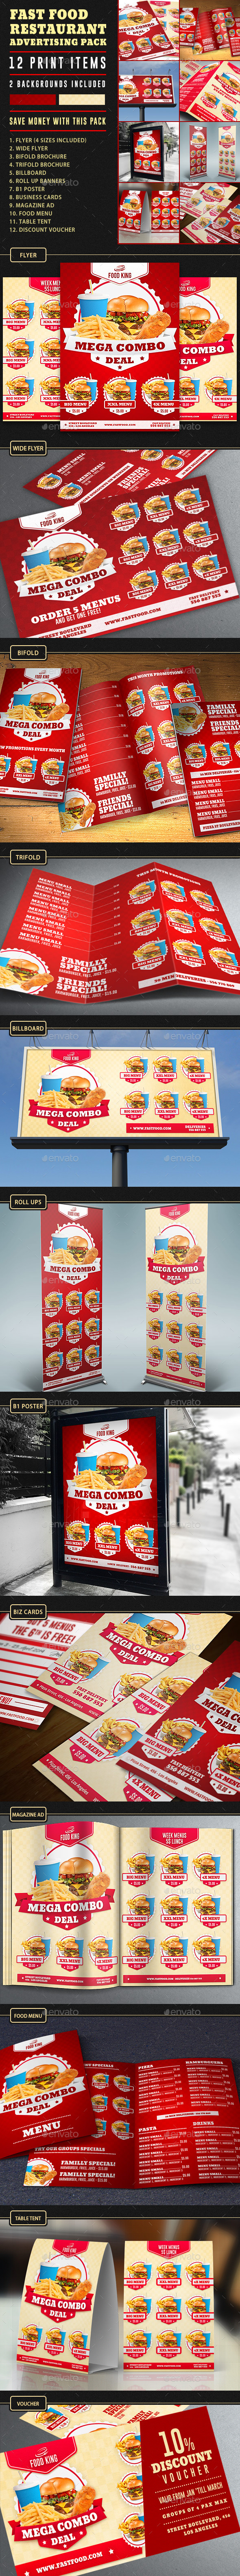 GraphicRiver Restaurant Fast Food Advertising Bundle Pack 11043443